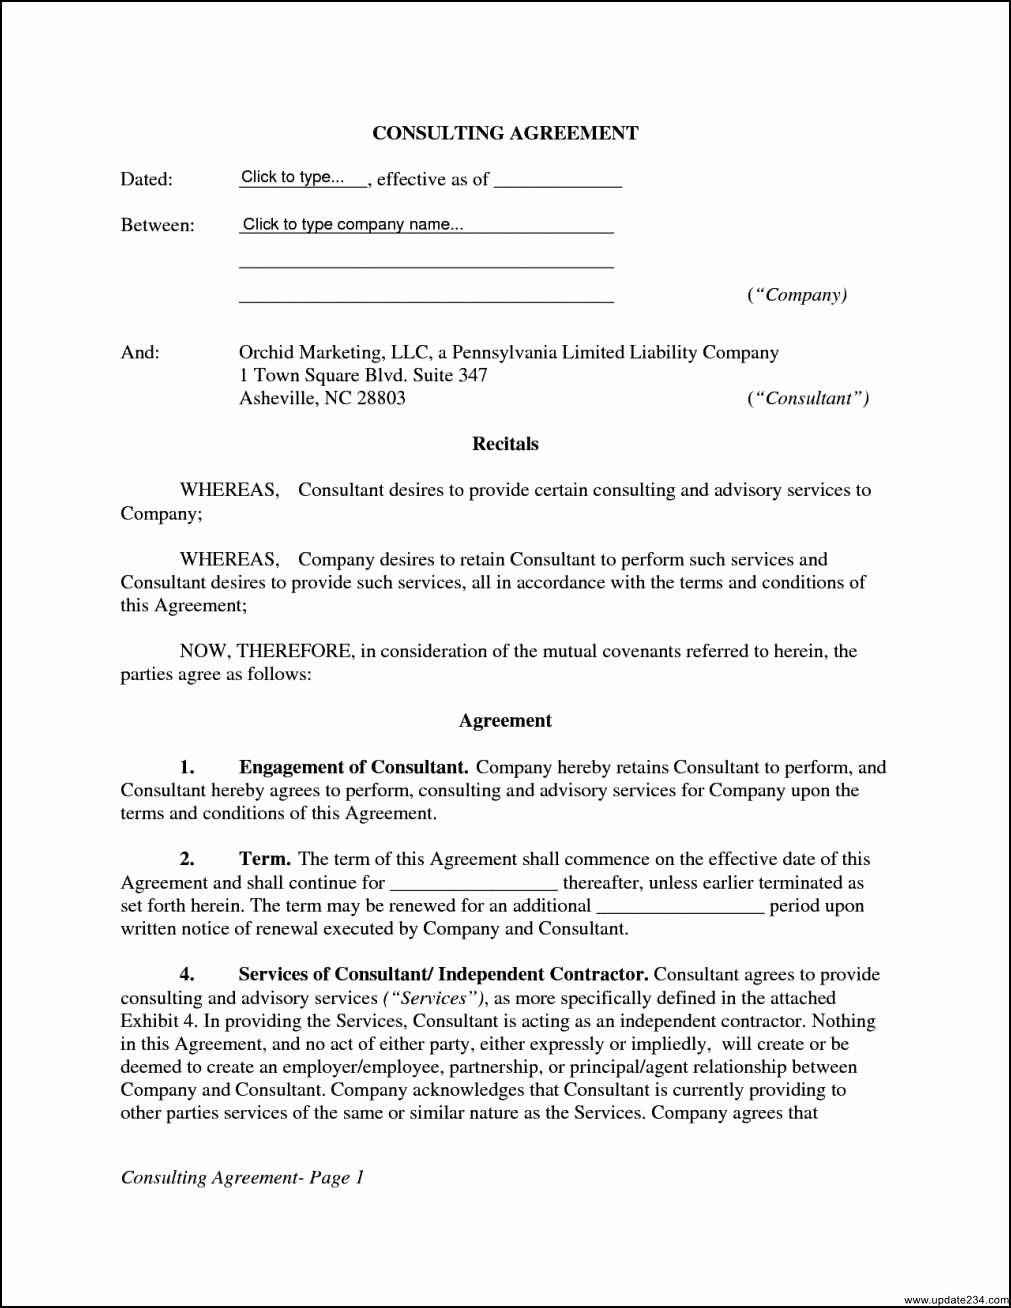 Consulting Agreement Template Free Inspirational 14 Fast Free Consulting Agreement Template Word Wu